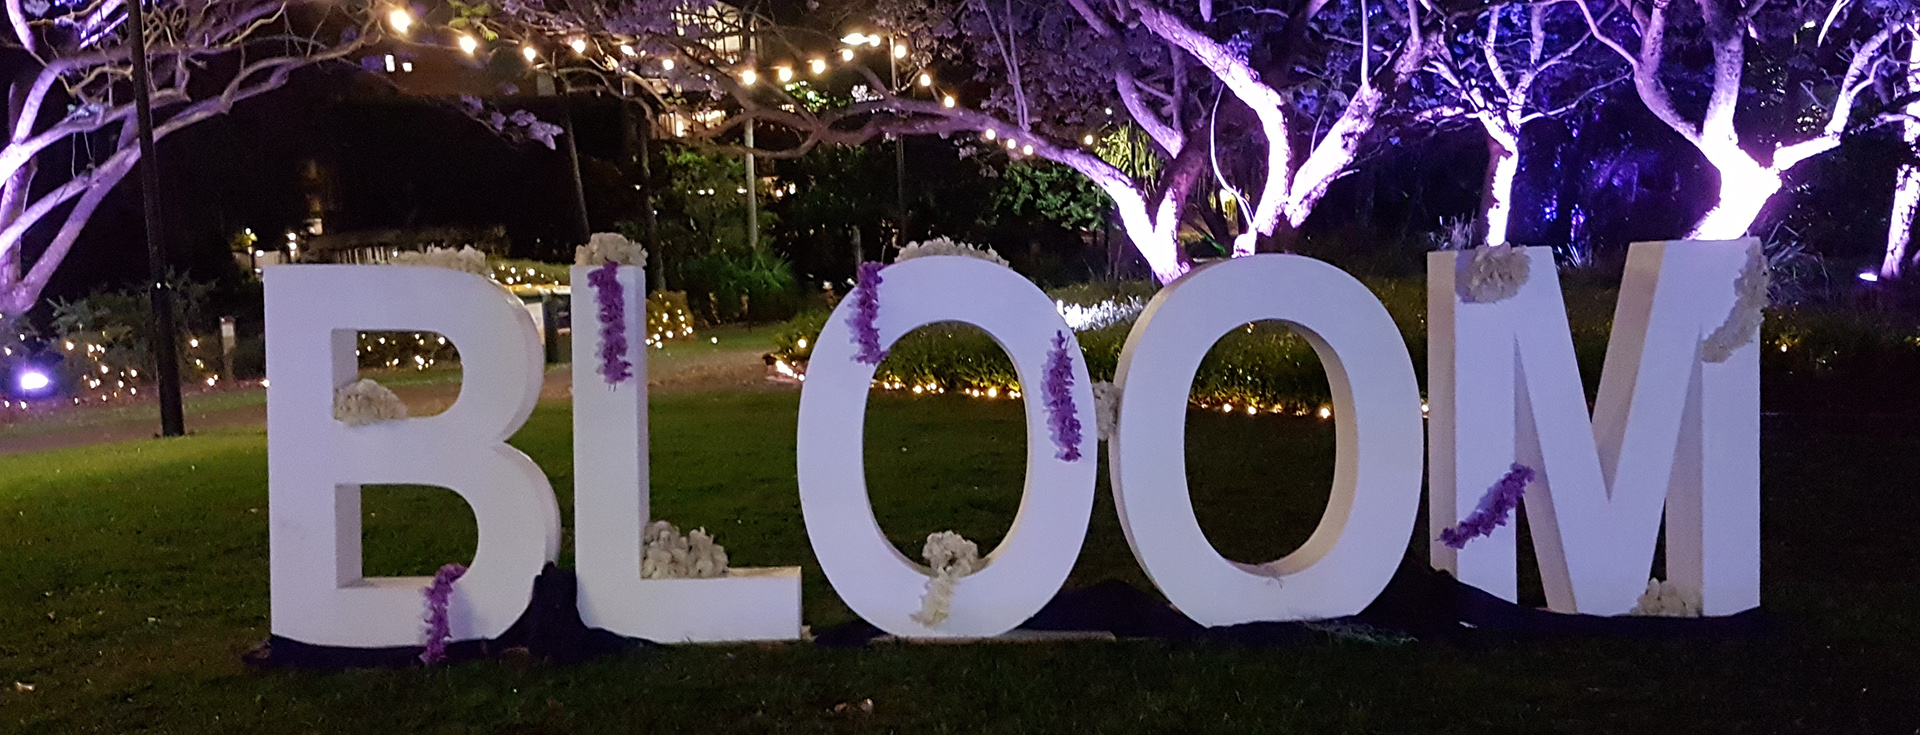 The University of Queensland Bloom Festival. Image Credit Brian MacNamara